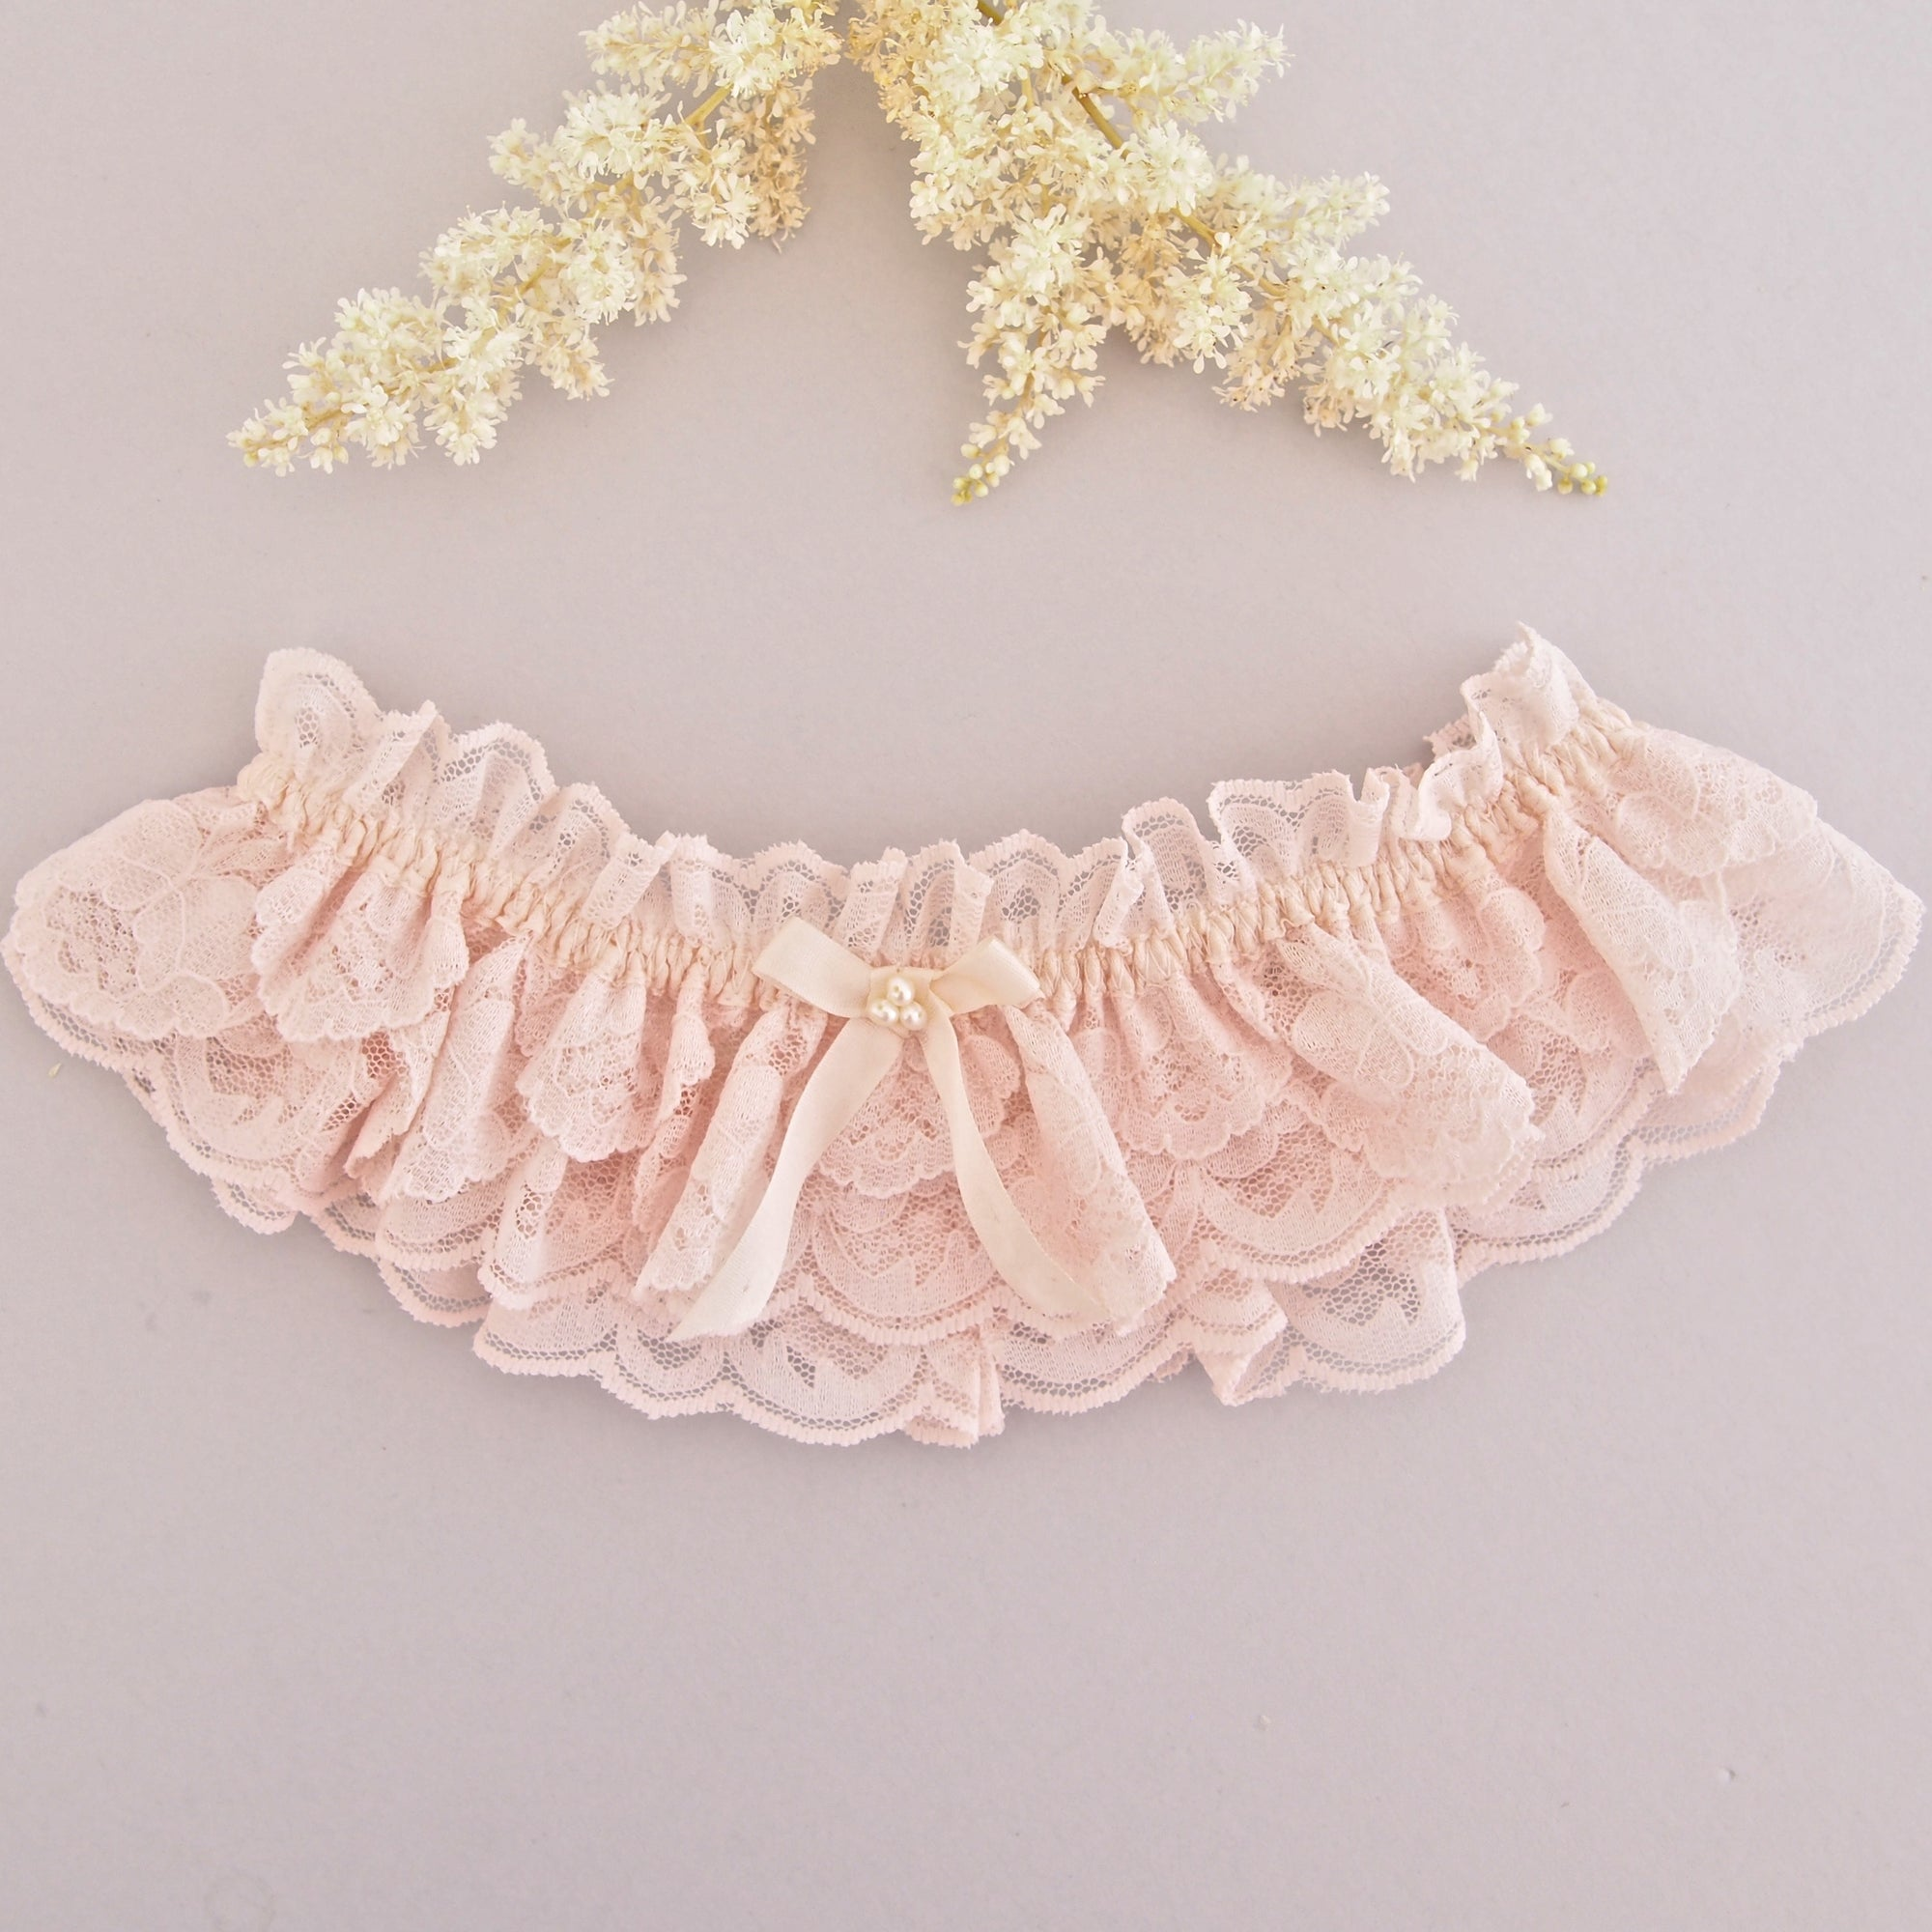 Garters Wedding: Camilla Pink Lace Wedding Garter With Pearls, Pale Pink